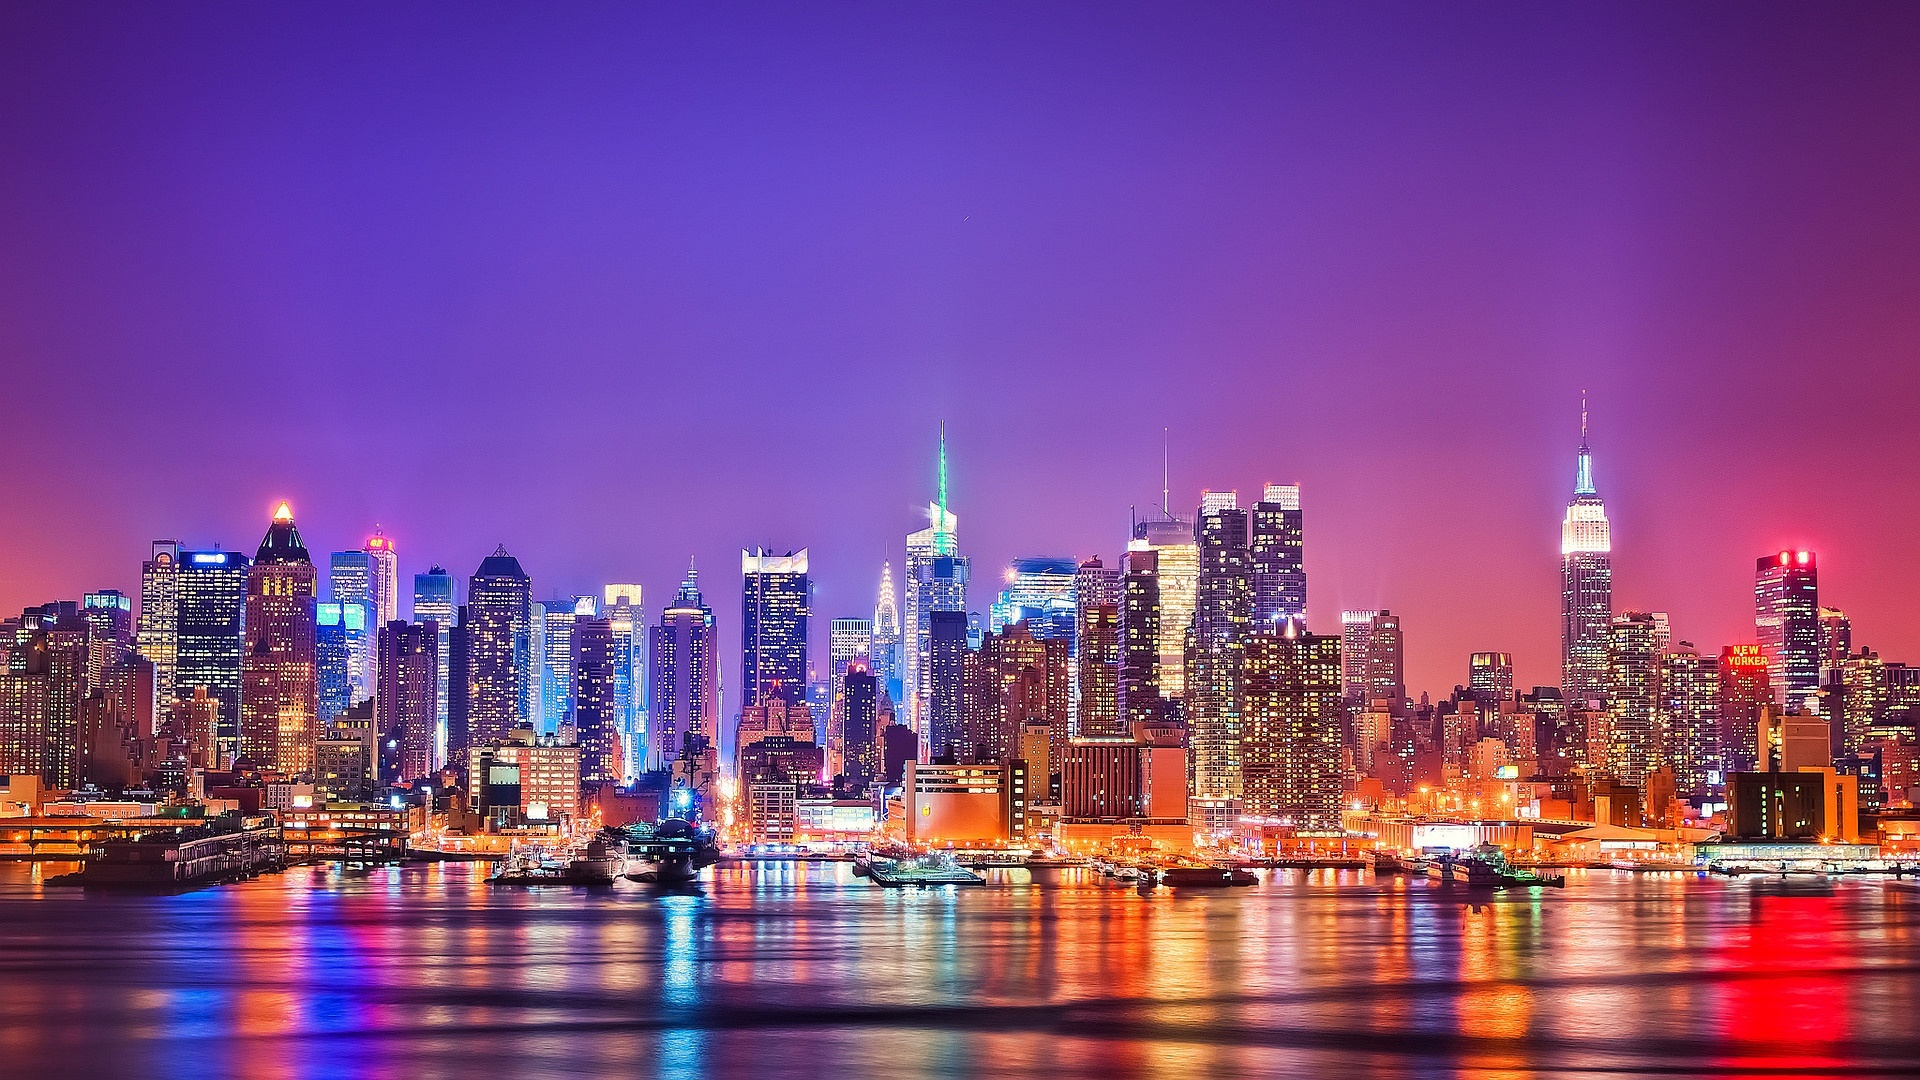 New York City Wallpaper 1920x1080